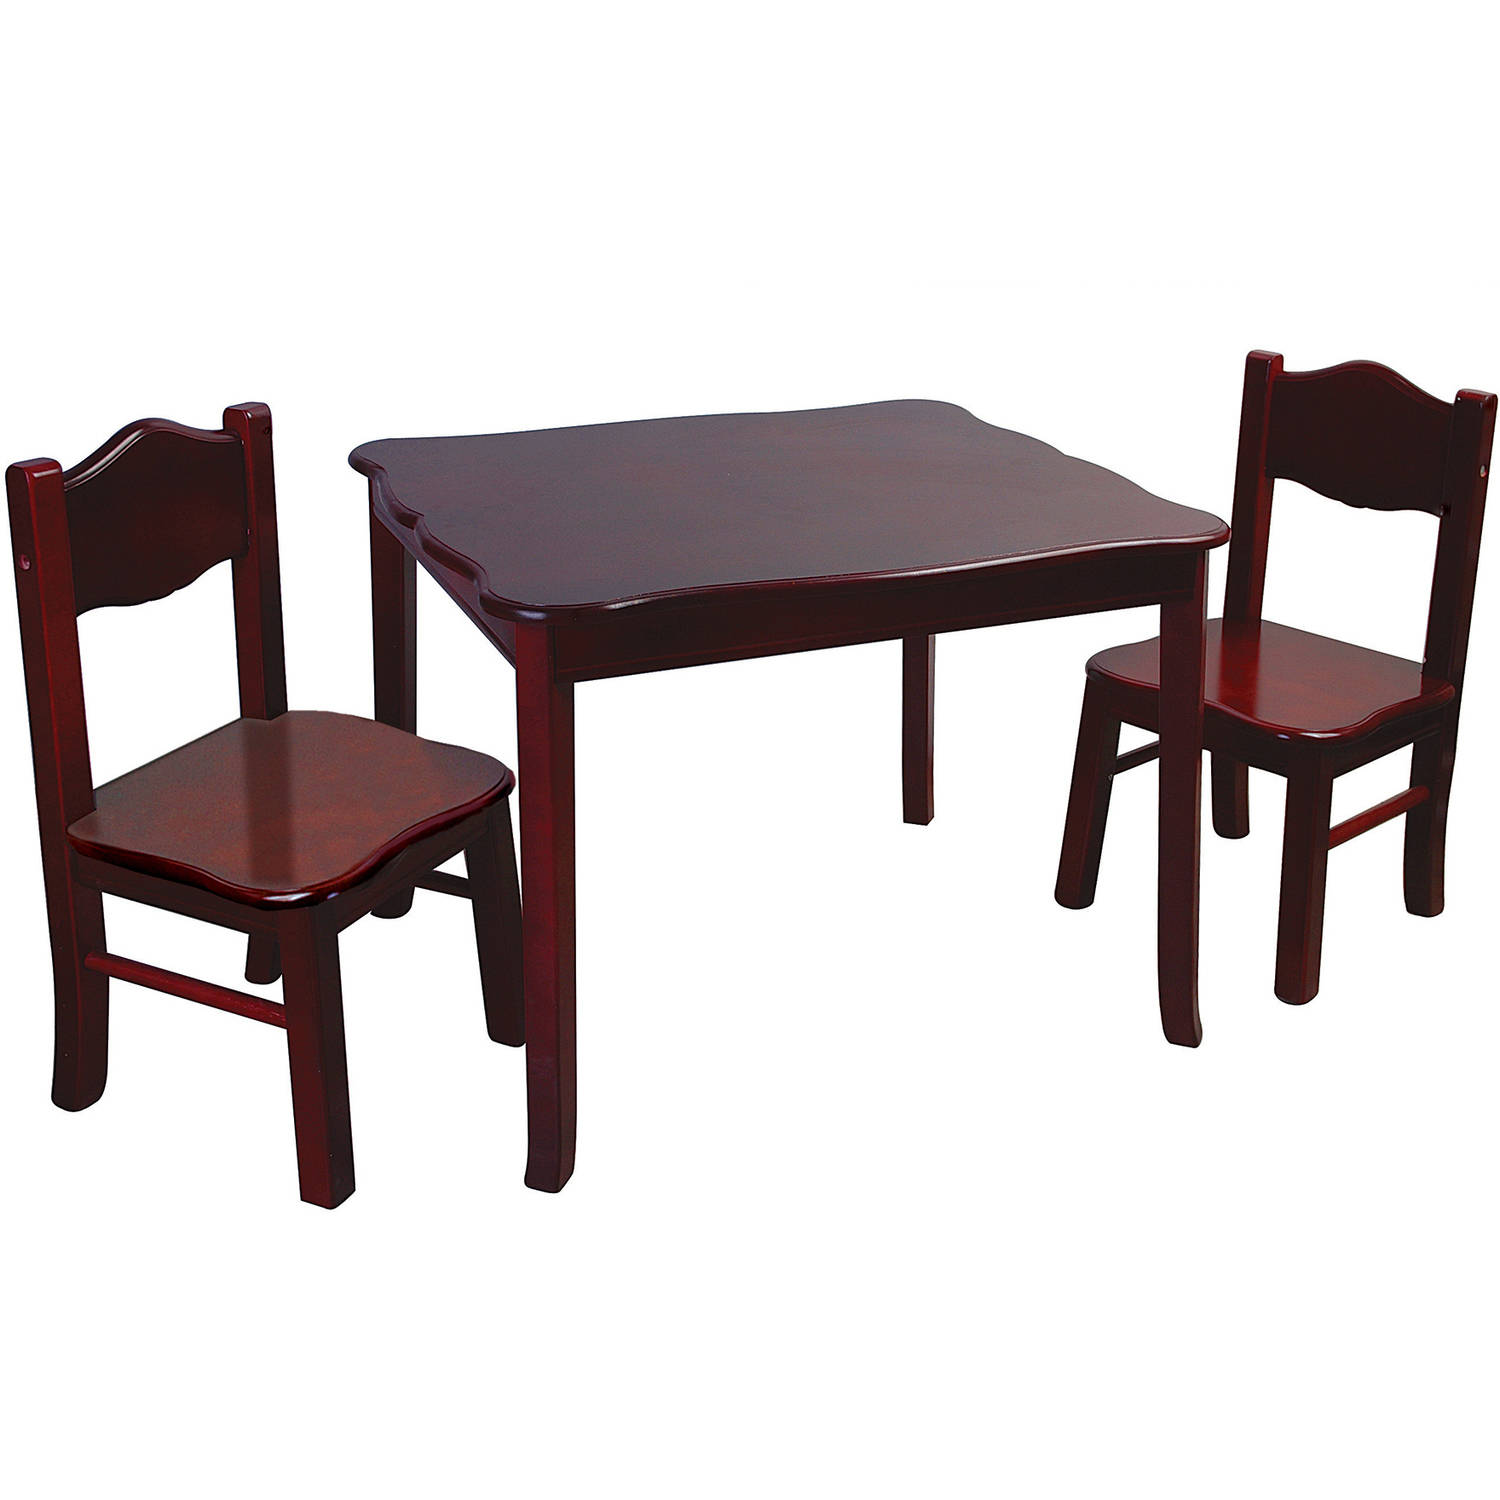 Table Set For Kids Guidecraft Table And Chairs Set Classic Espresso Walmartcom